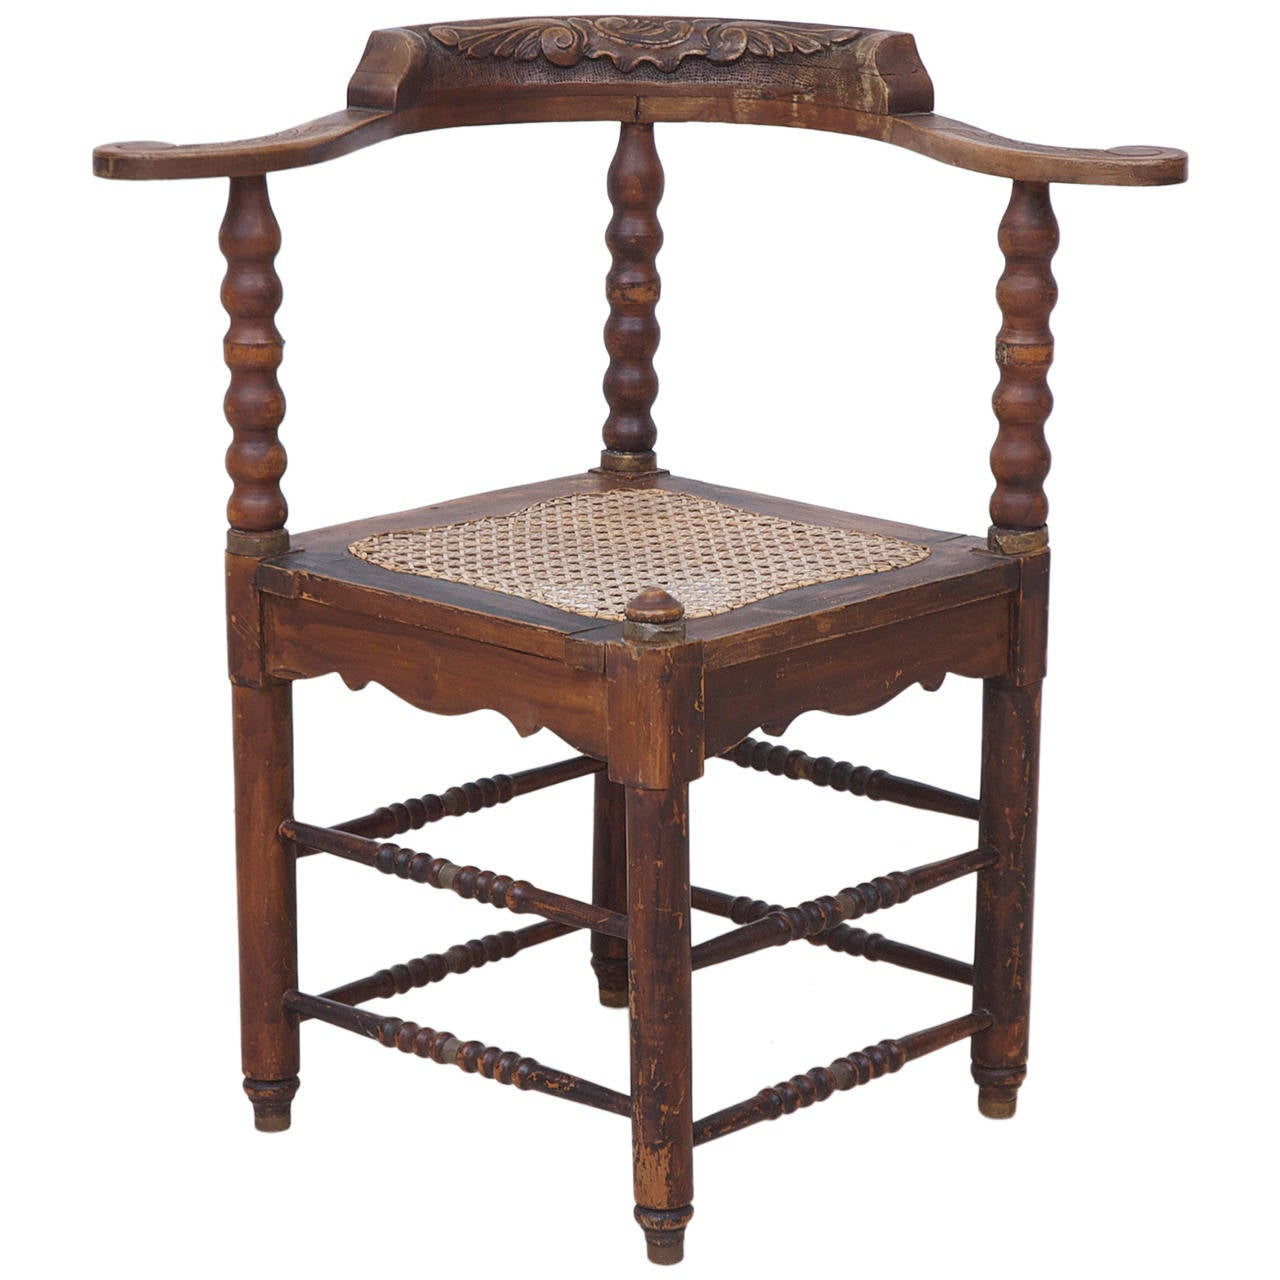 Dutch Colonial Corner Chair from Suriname 1 - Dutch Colonial Corner Chair From Suriname For Sale At 1stdibs